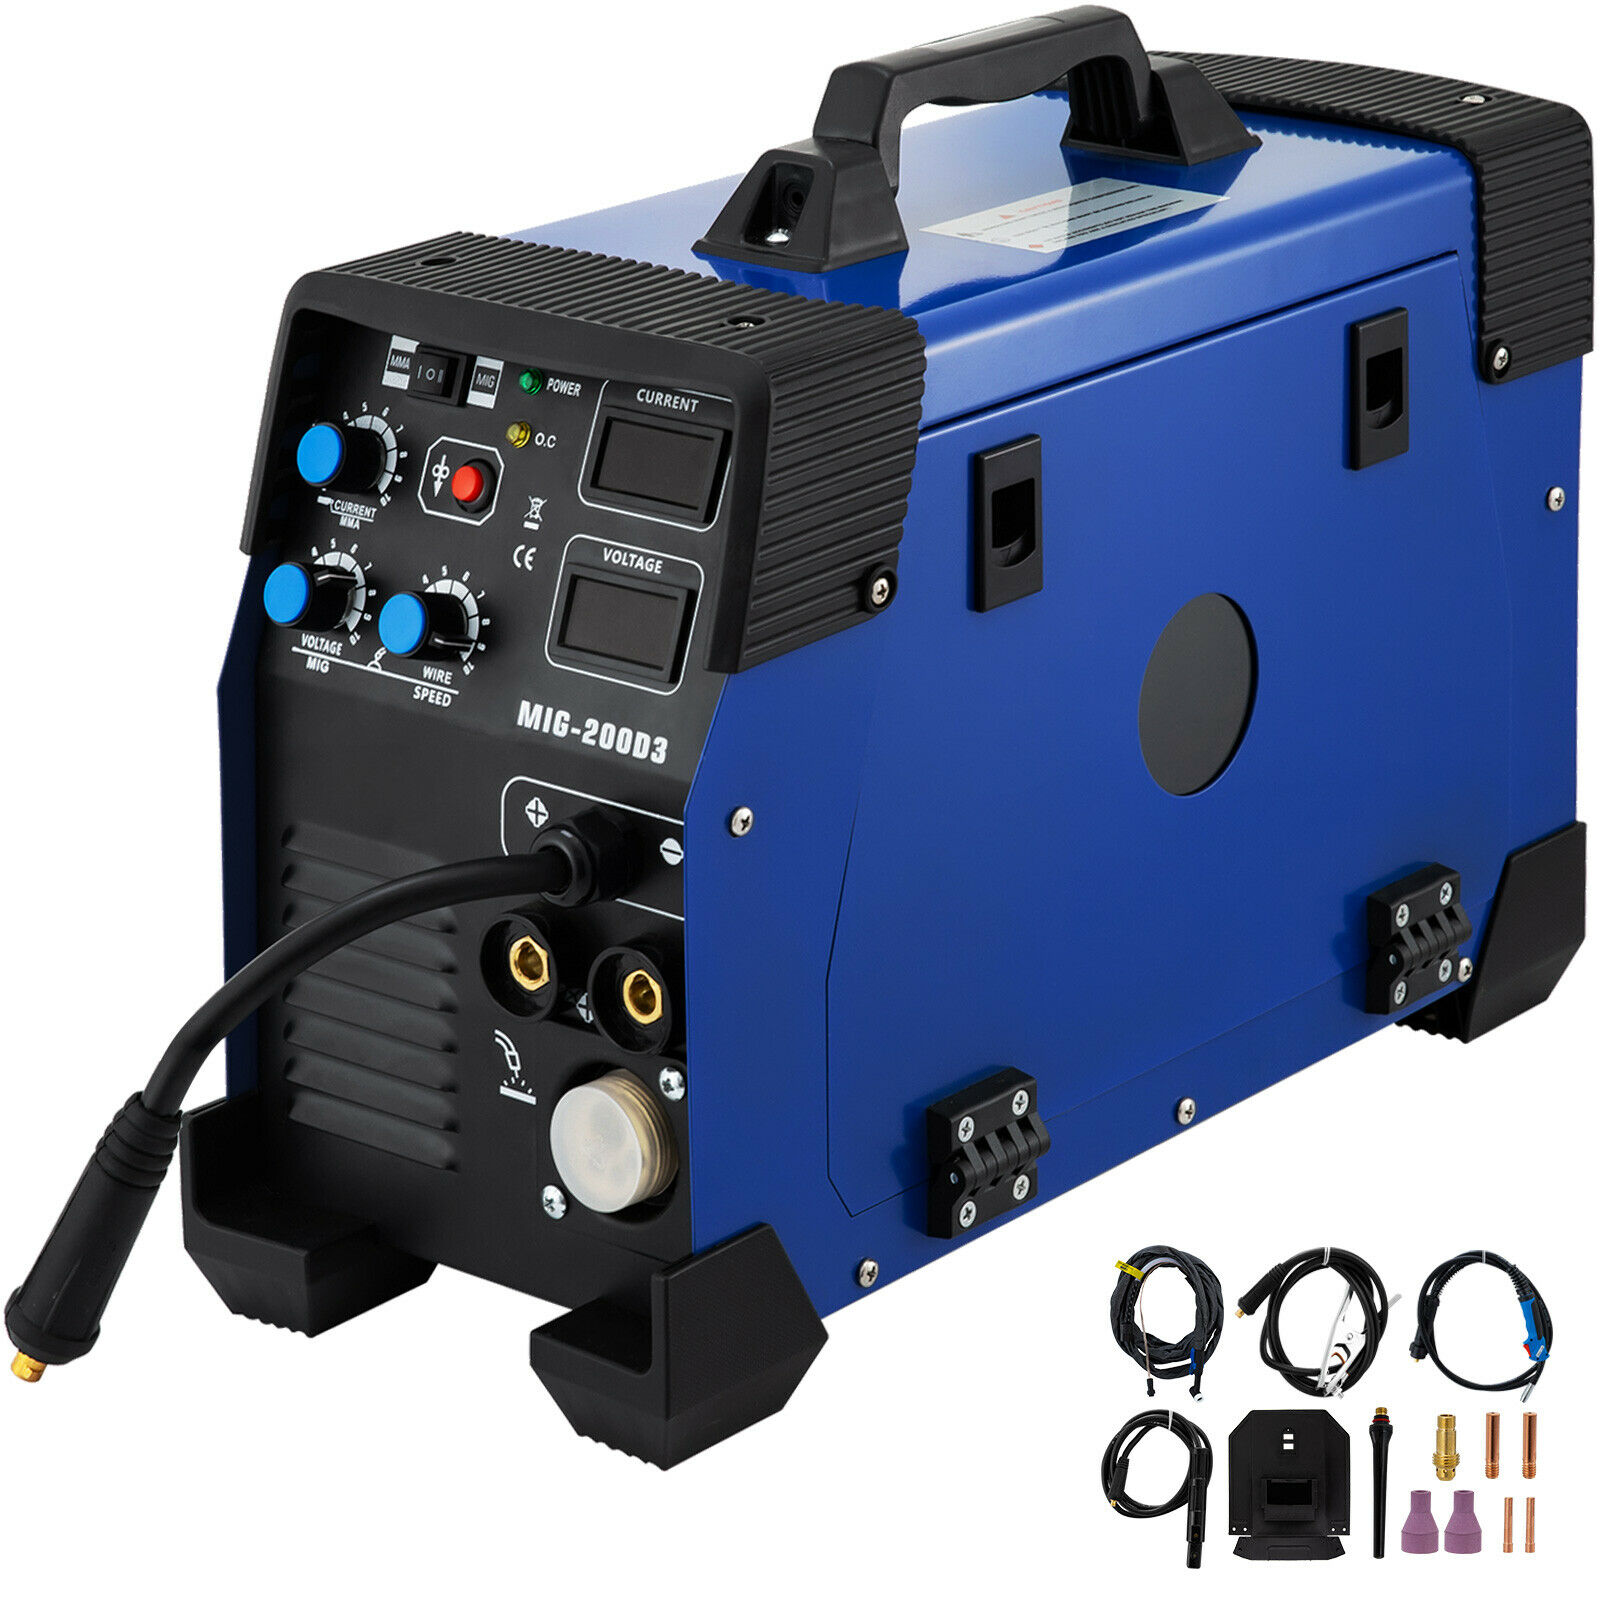 5 In 1 MIG / MAG / TIG / FLUX / MMA Inverter Welder 200Amp Combo Welding Machine Spot Welder